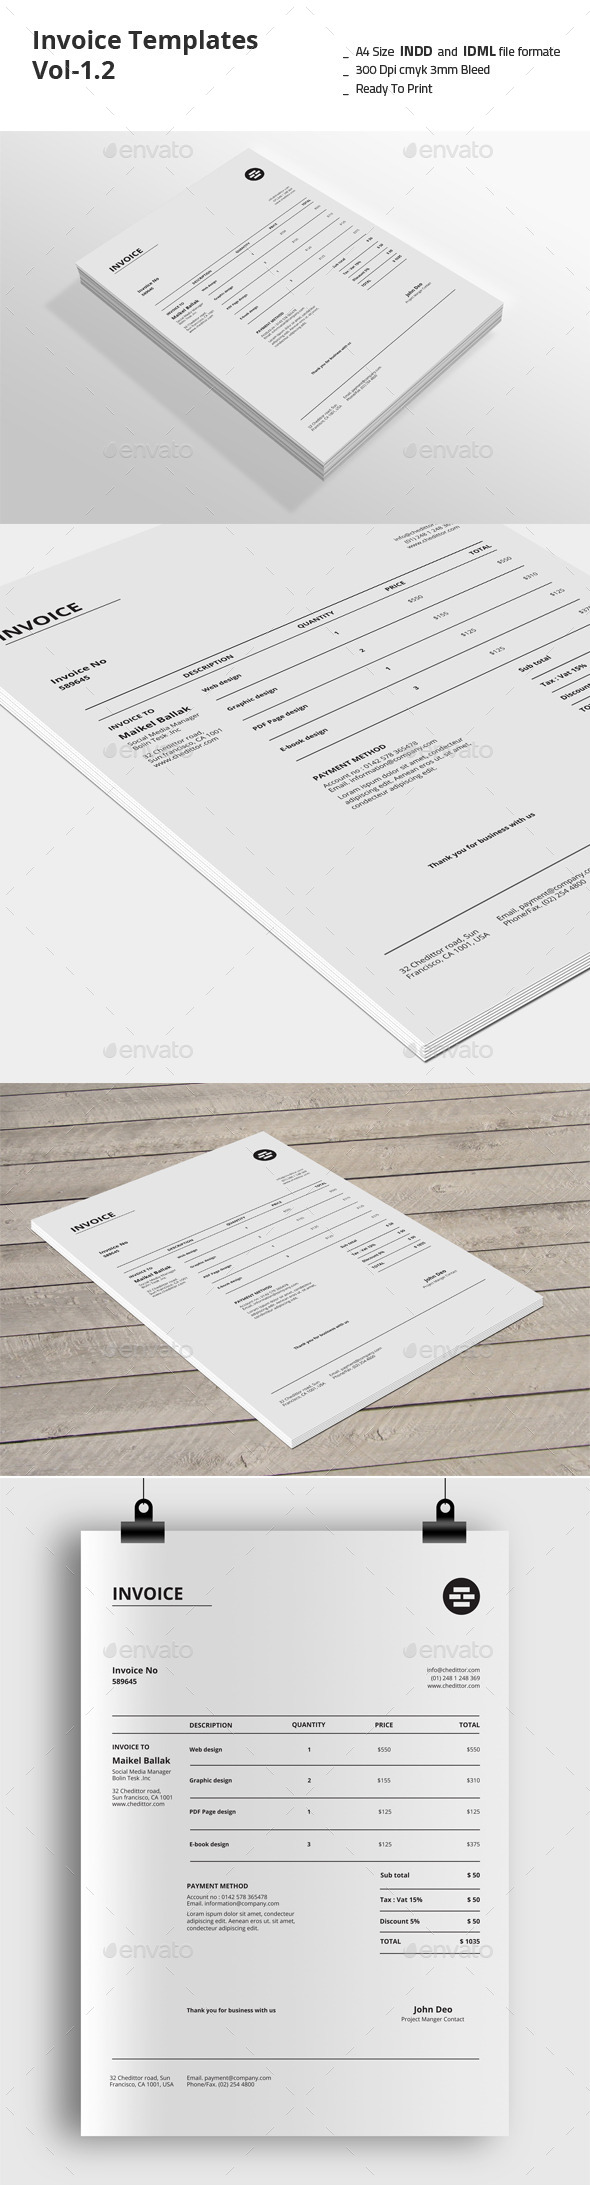 GraphicRiver Invoice Templates Vol-1.2 9212779